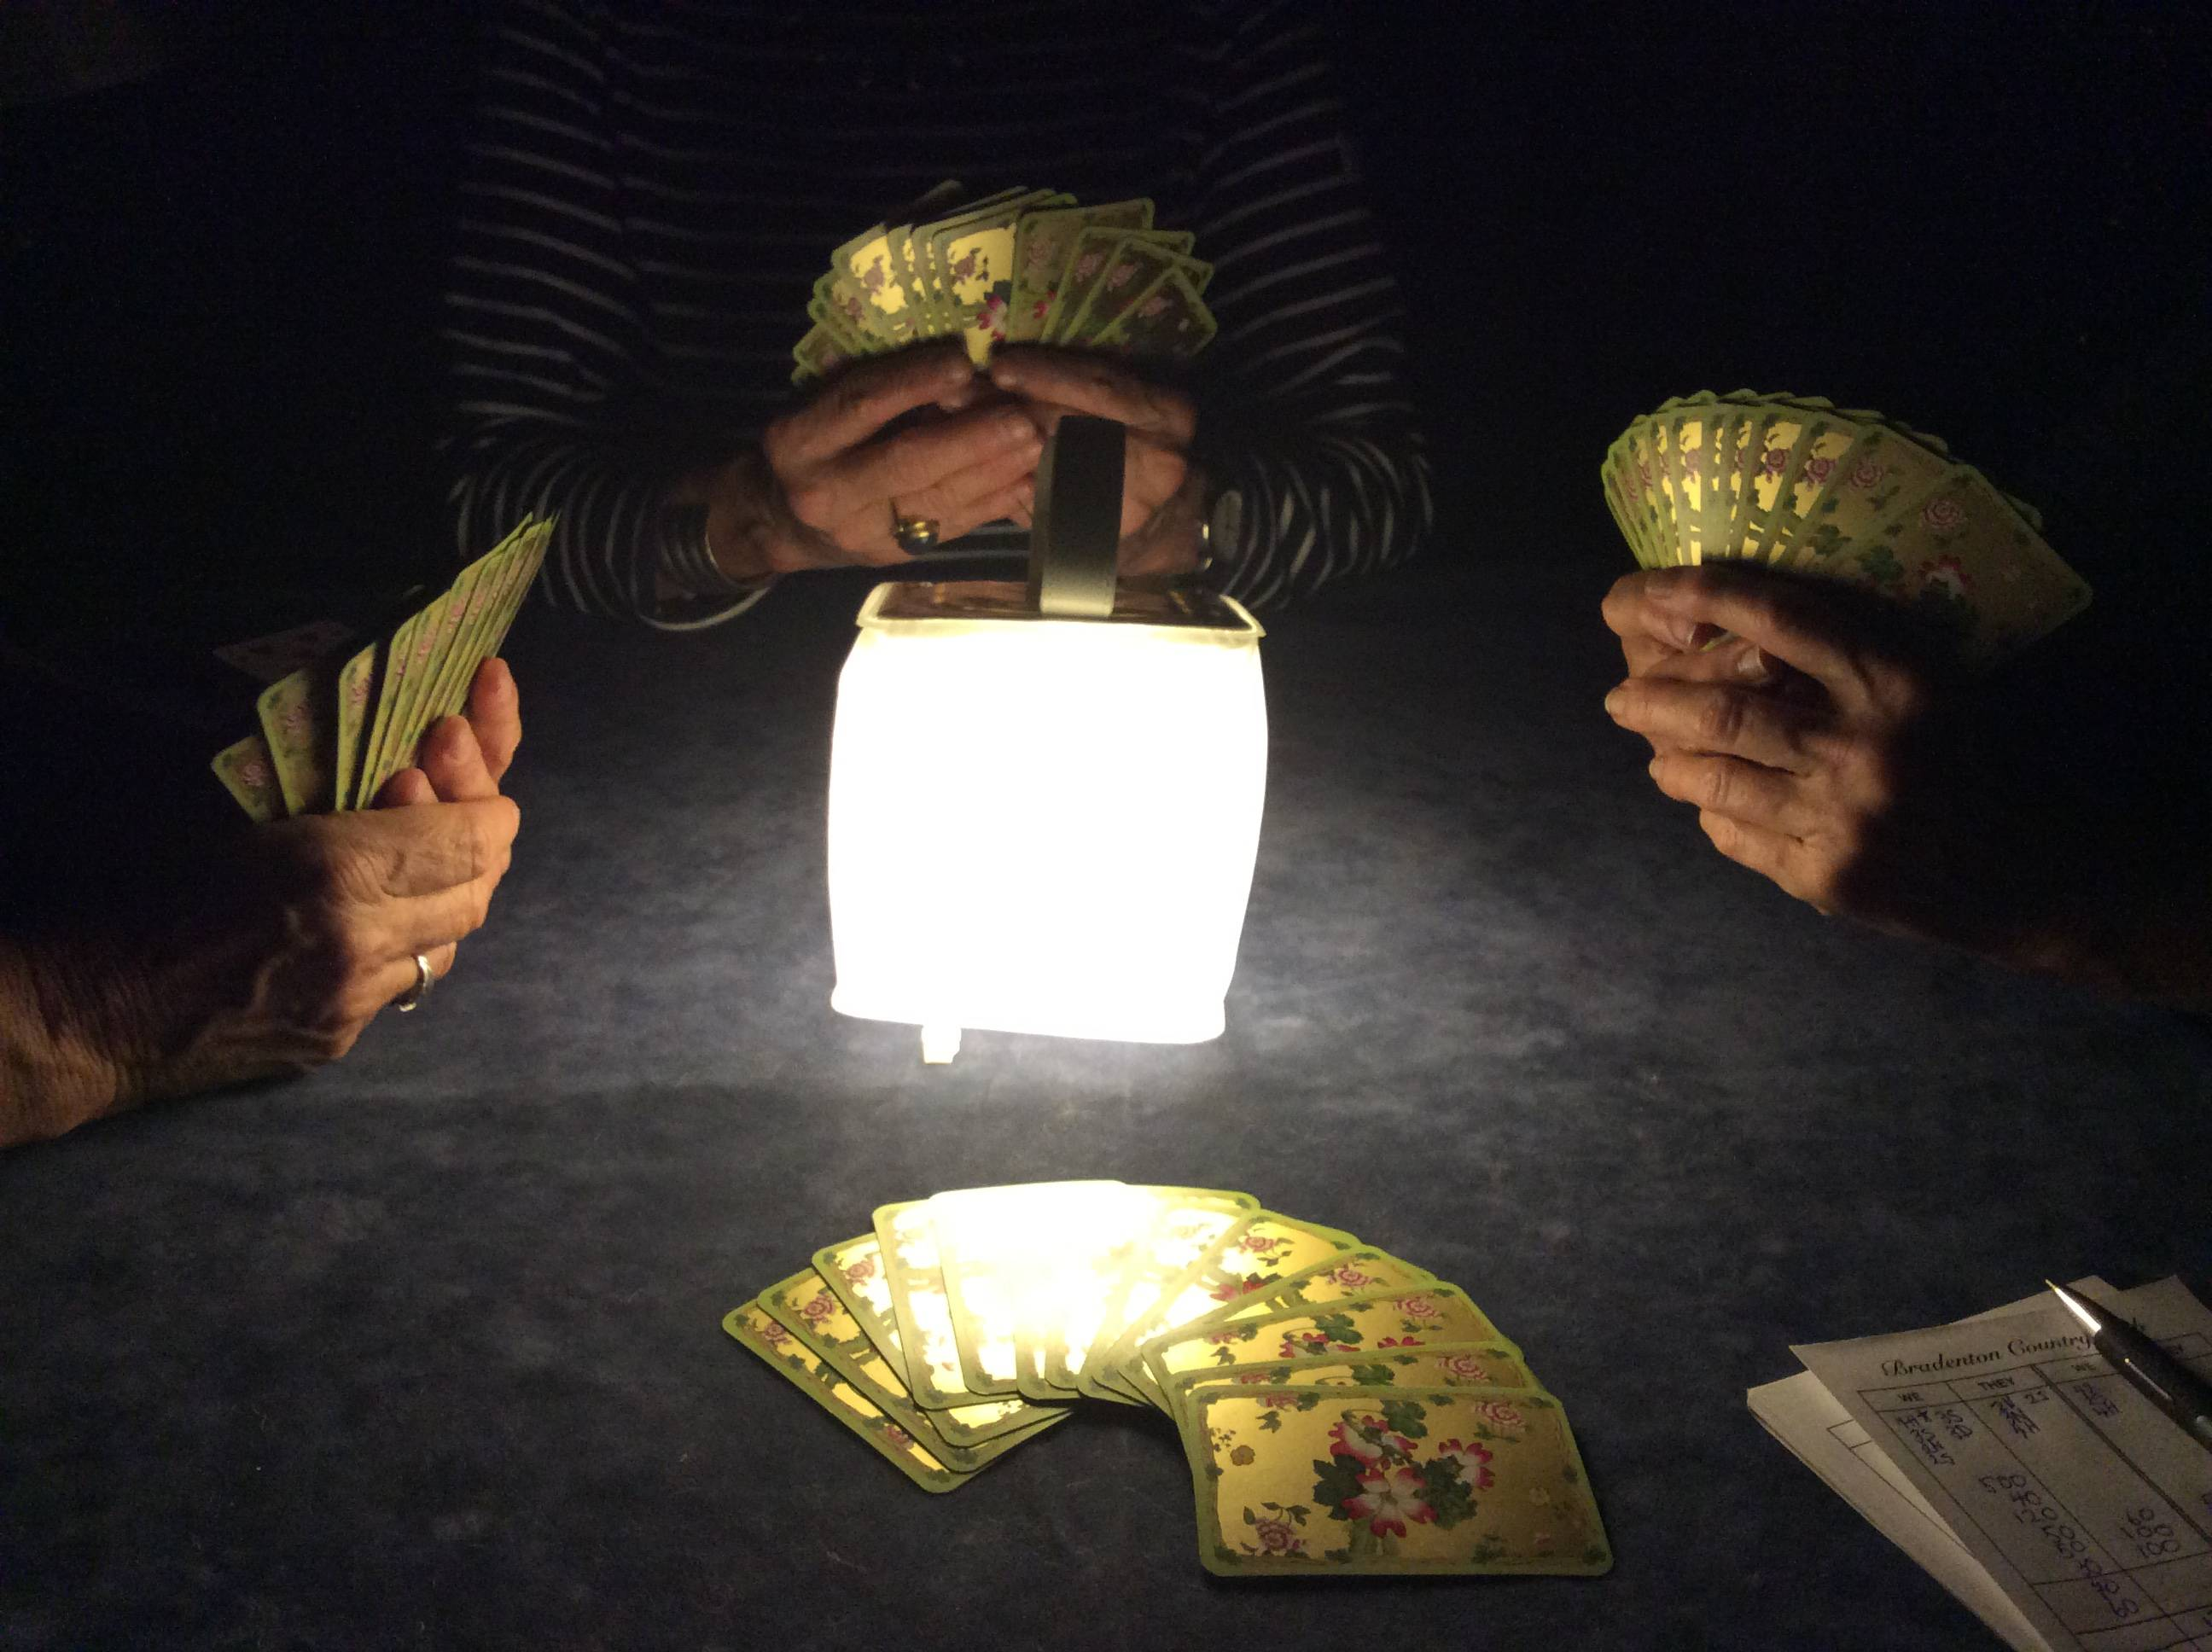 Play cards in the dark with your LuminAID lantern.